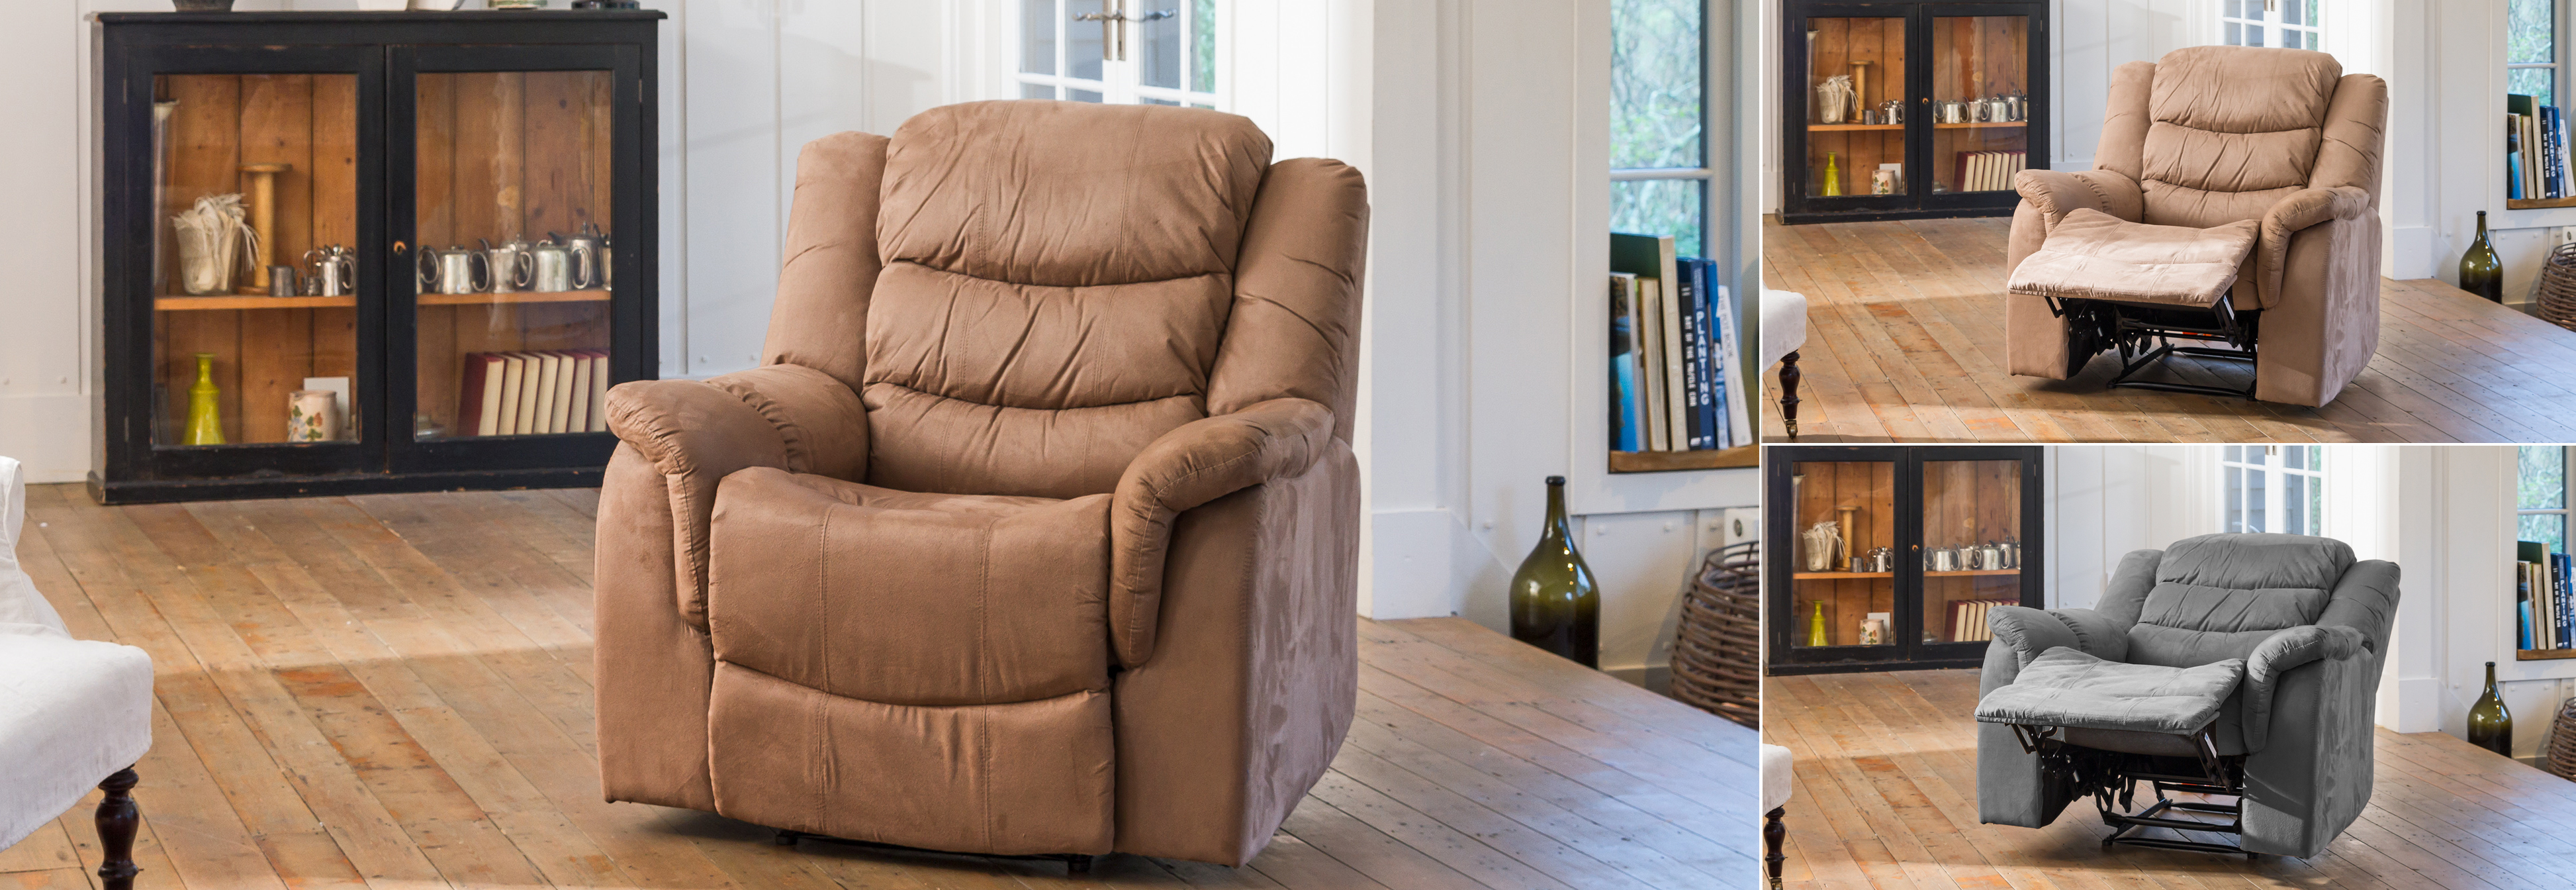 Asquith Electric Recliner mocha